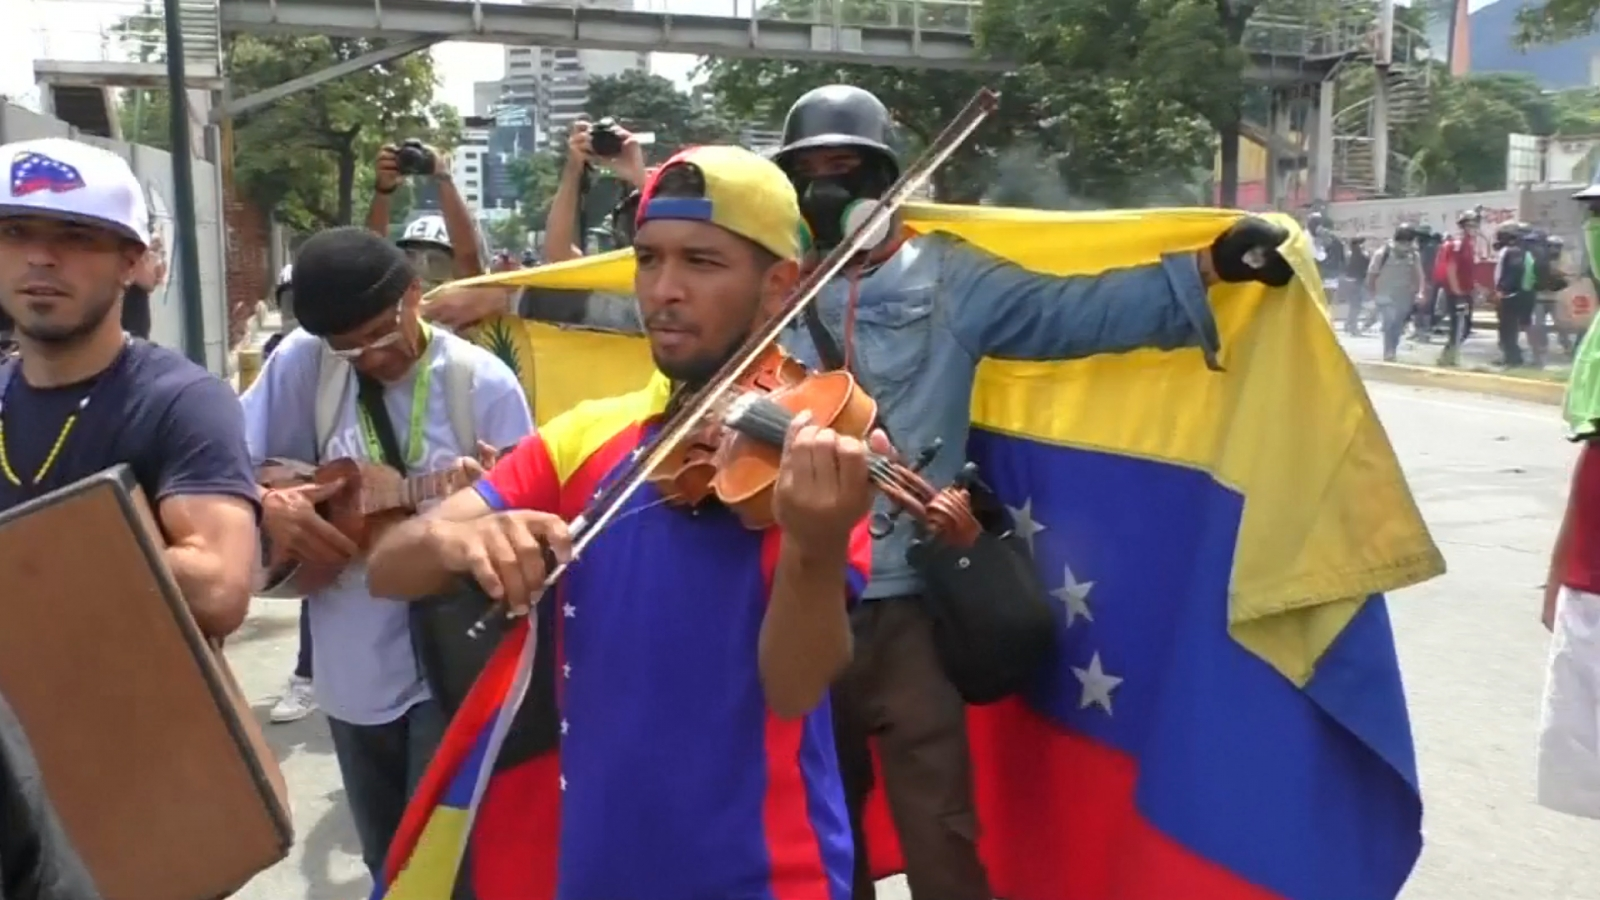 venezuela-protest-violinist-injured-as-youths-clash-with-security-forces